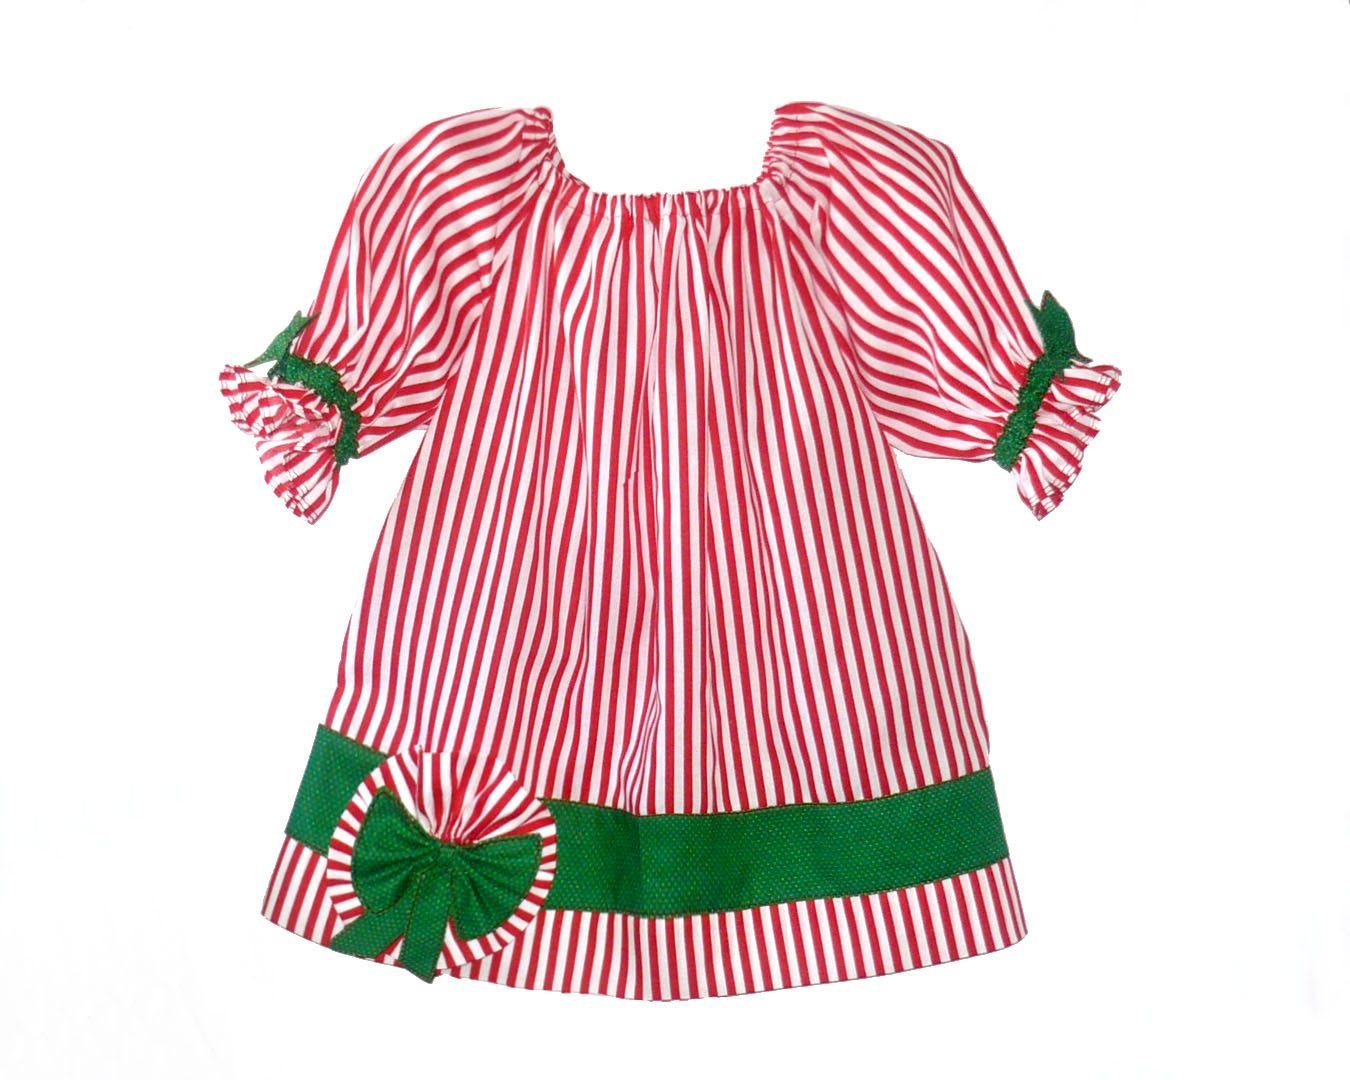 4dda1bb37 Girls Christmas Dress Outfit Kids Baby Toddler Peppermint 2t 3t 4t 5 6  handmade Ready to ship in most sizes. $26.00, via Etsy.